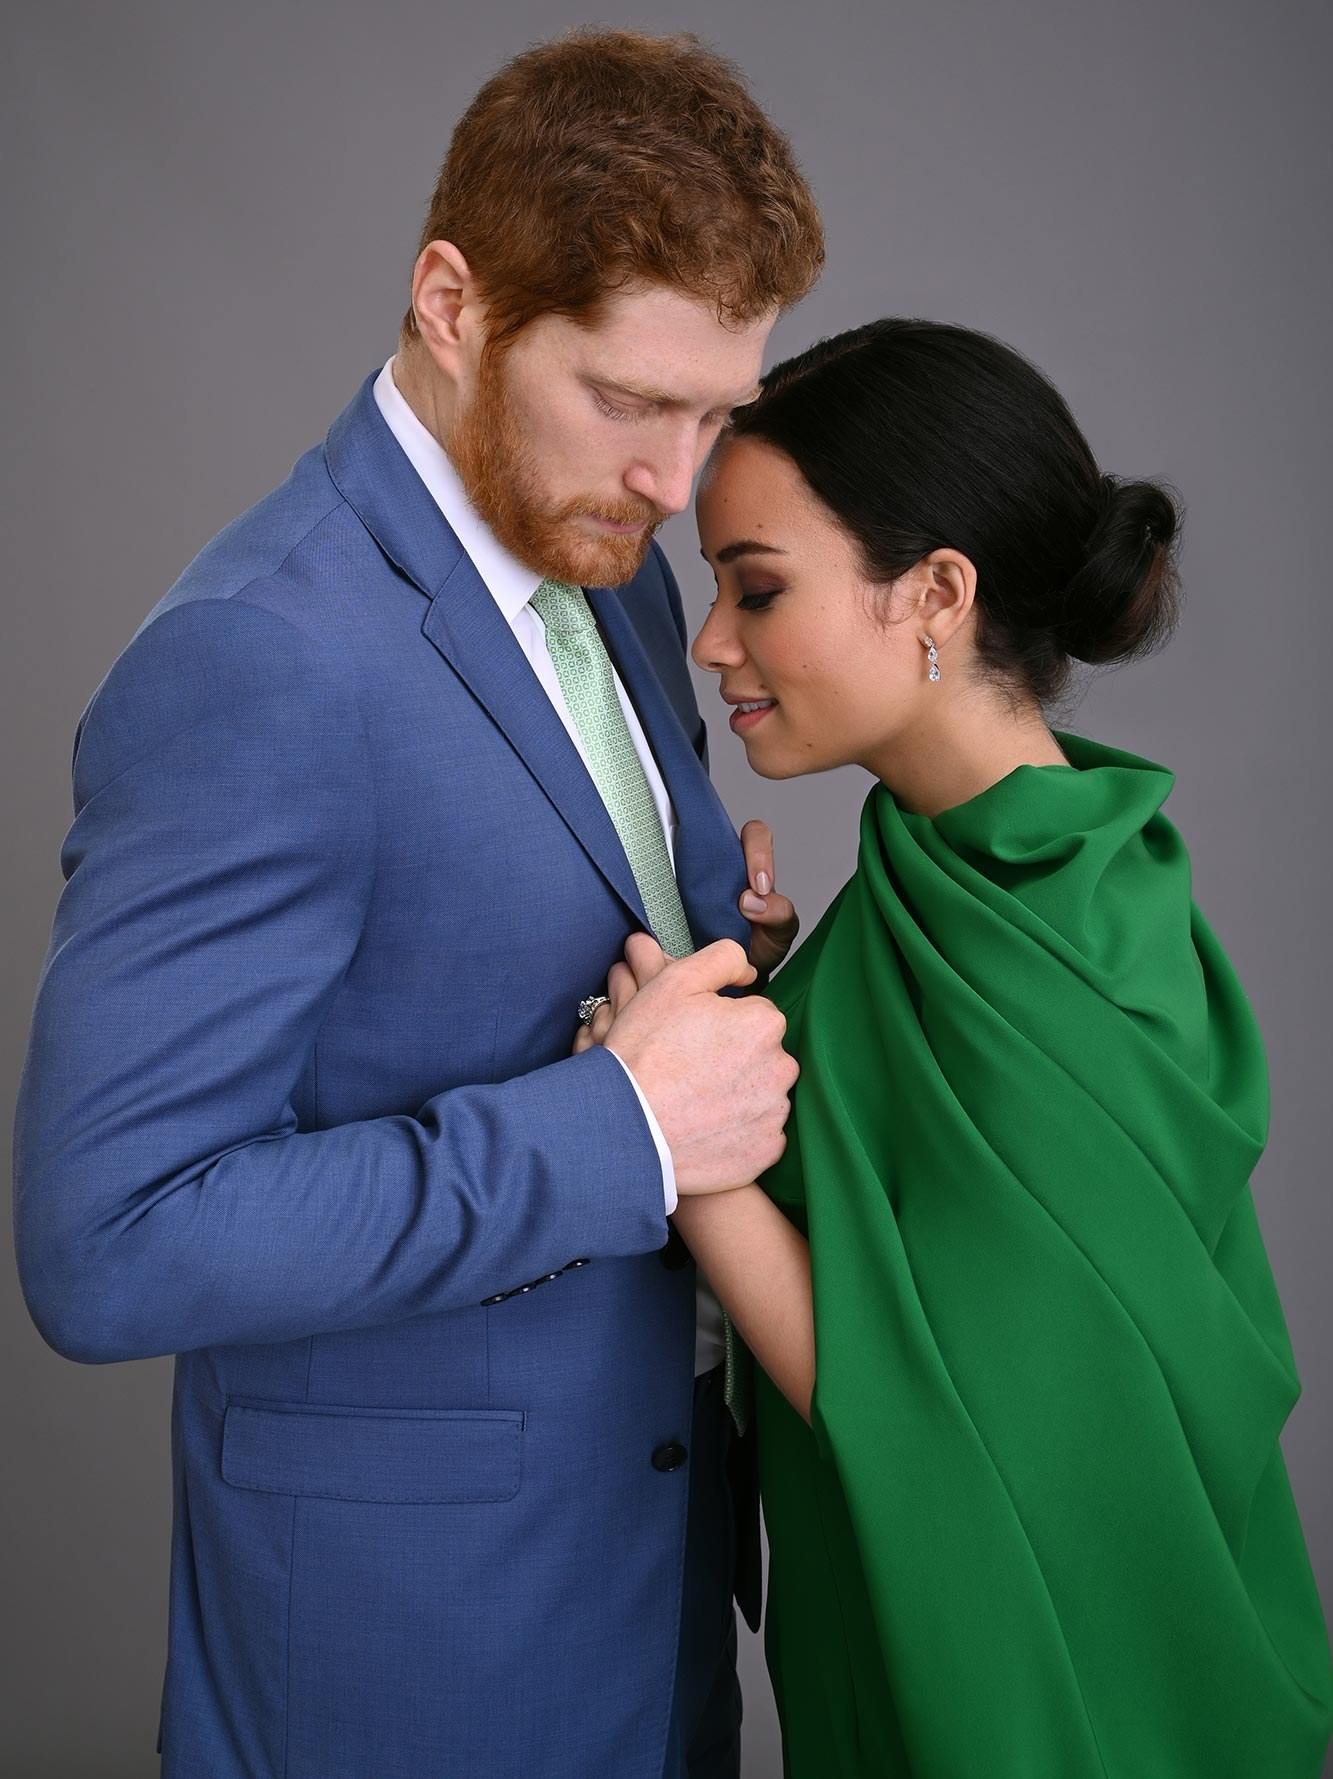 The actors playing Meghan and Harry face each other and hold hands